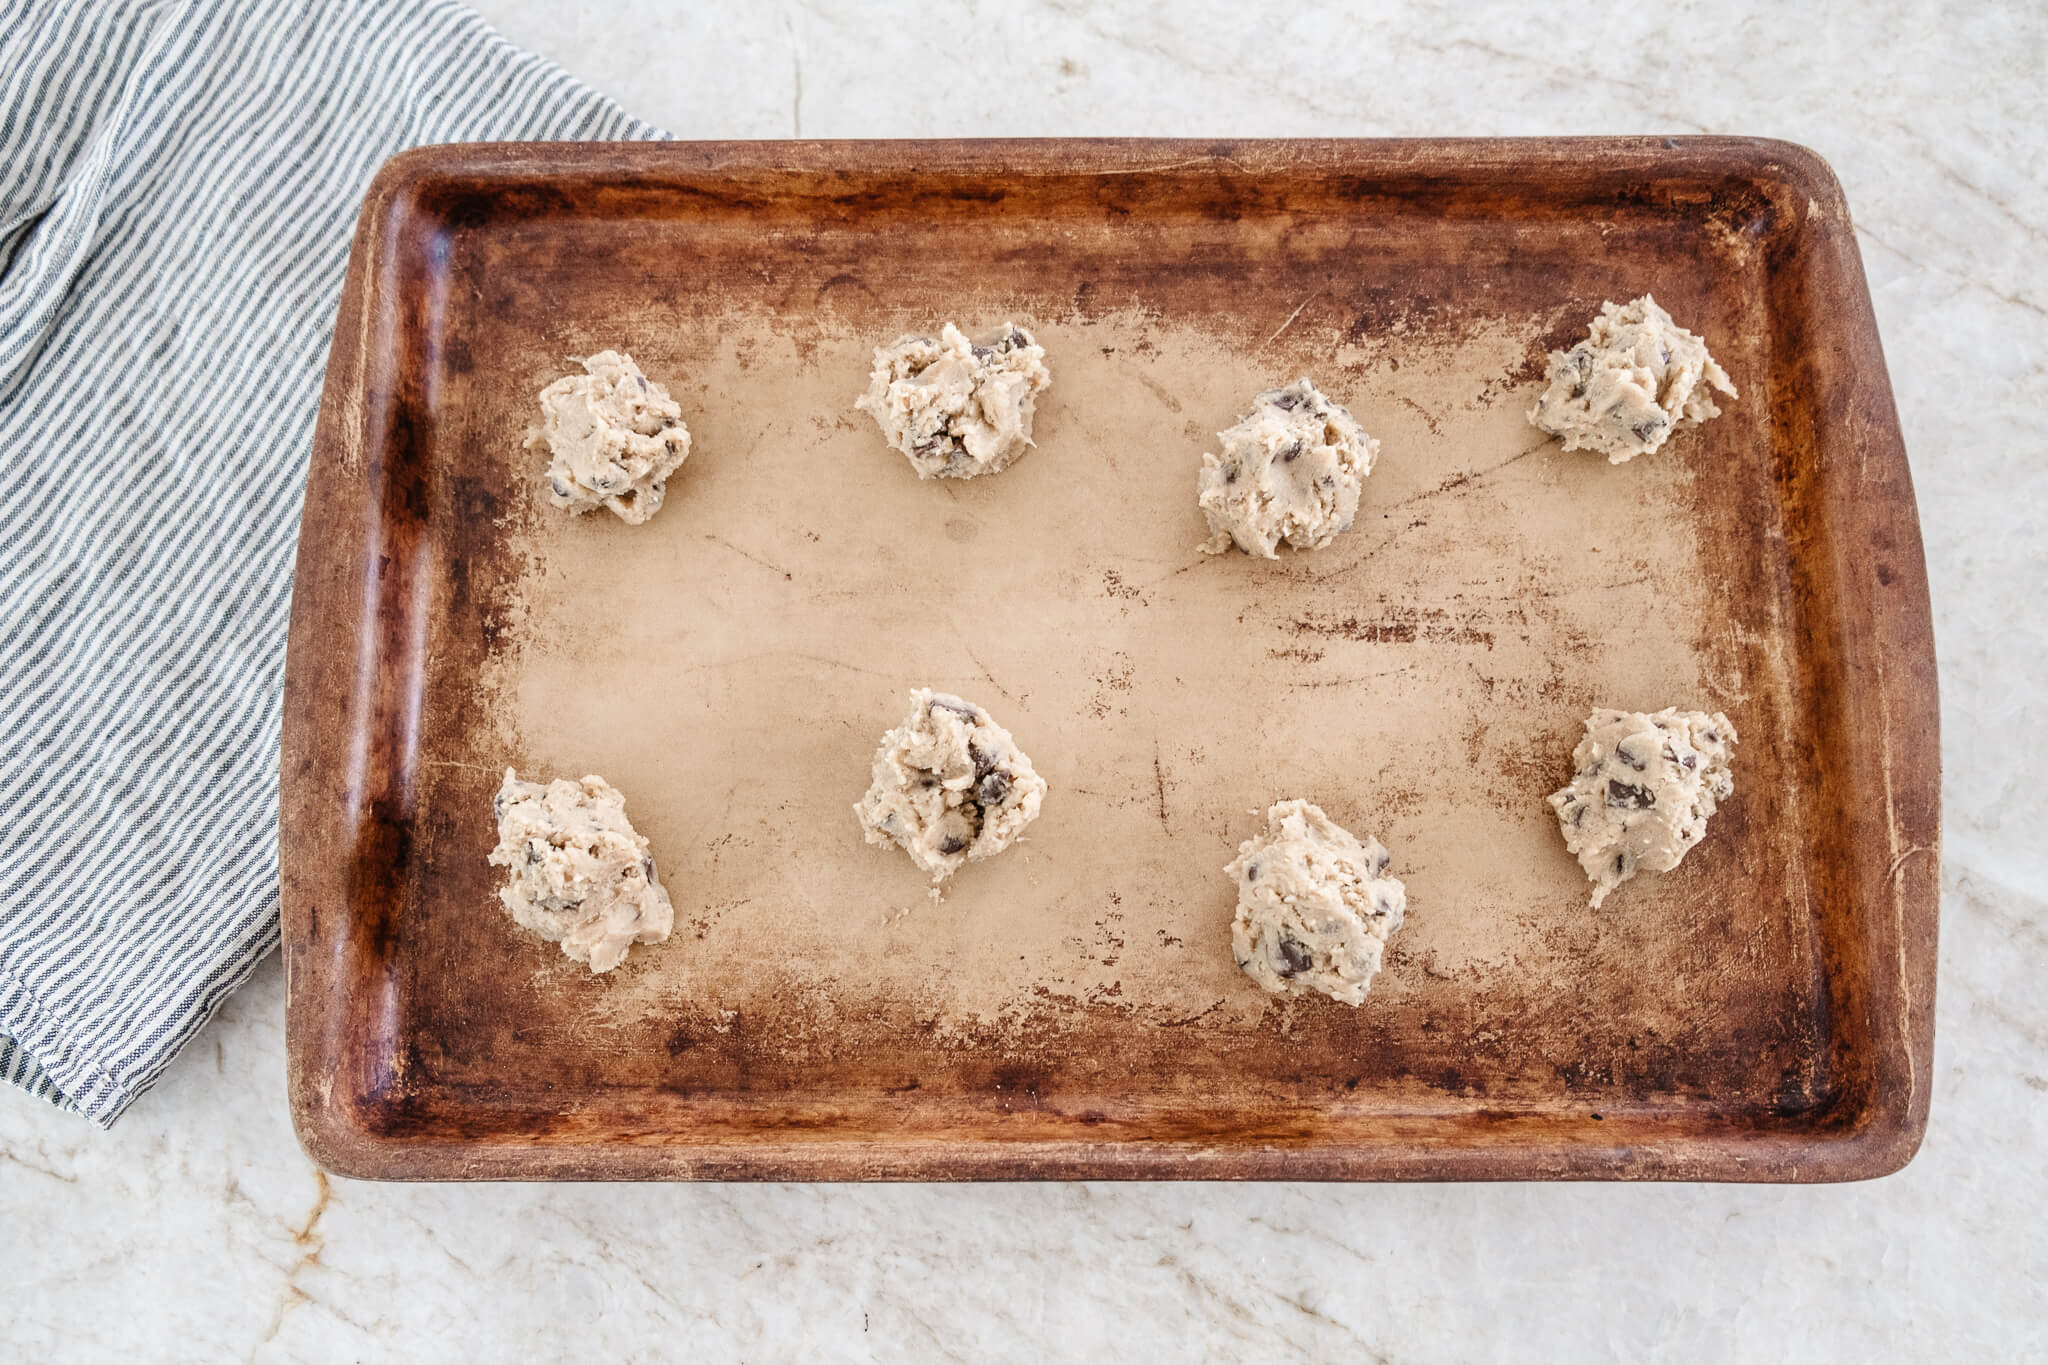 Easy Chocolate Chip Cookie Recipes Cookies Dropped on Cookie Sheet